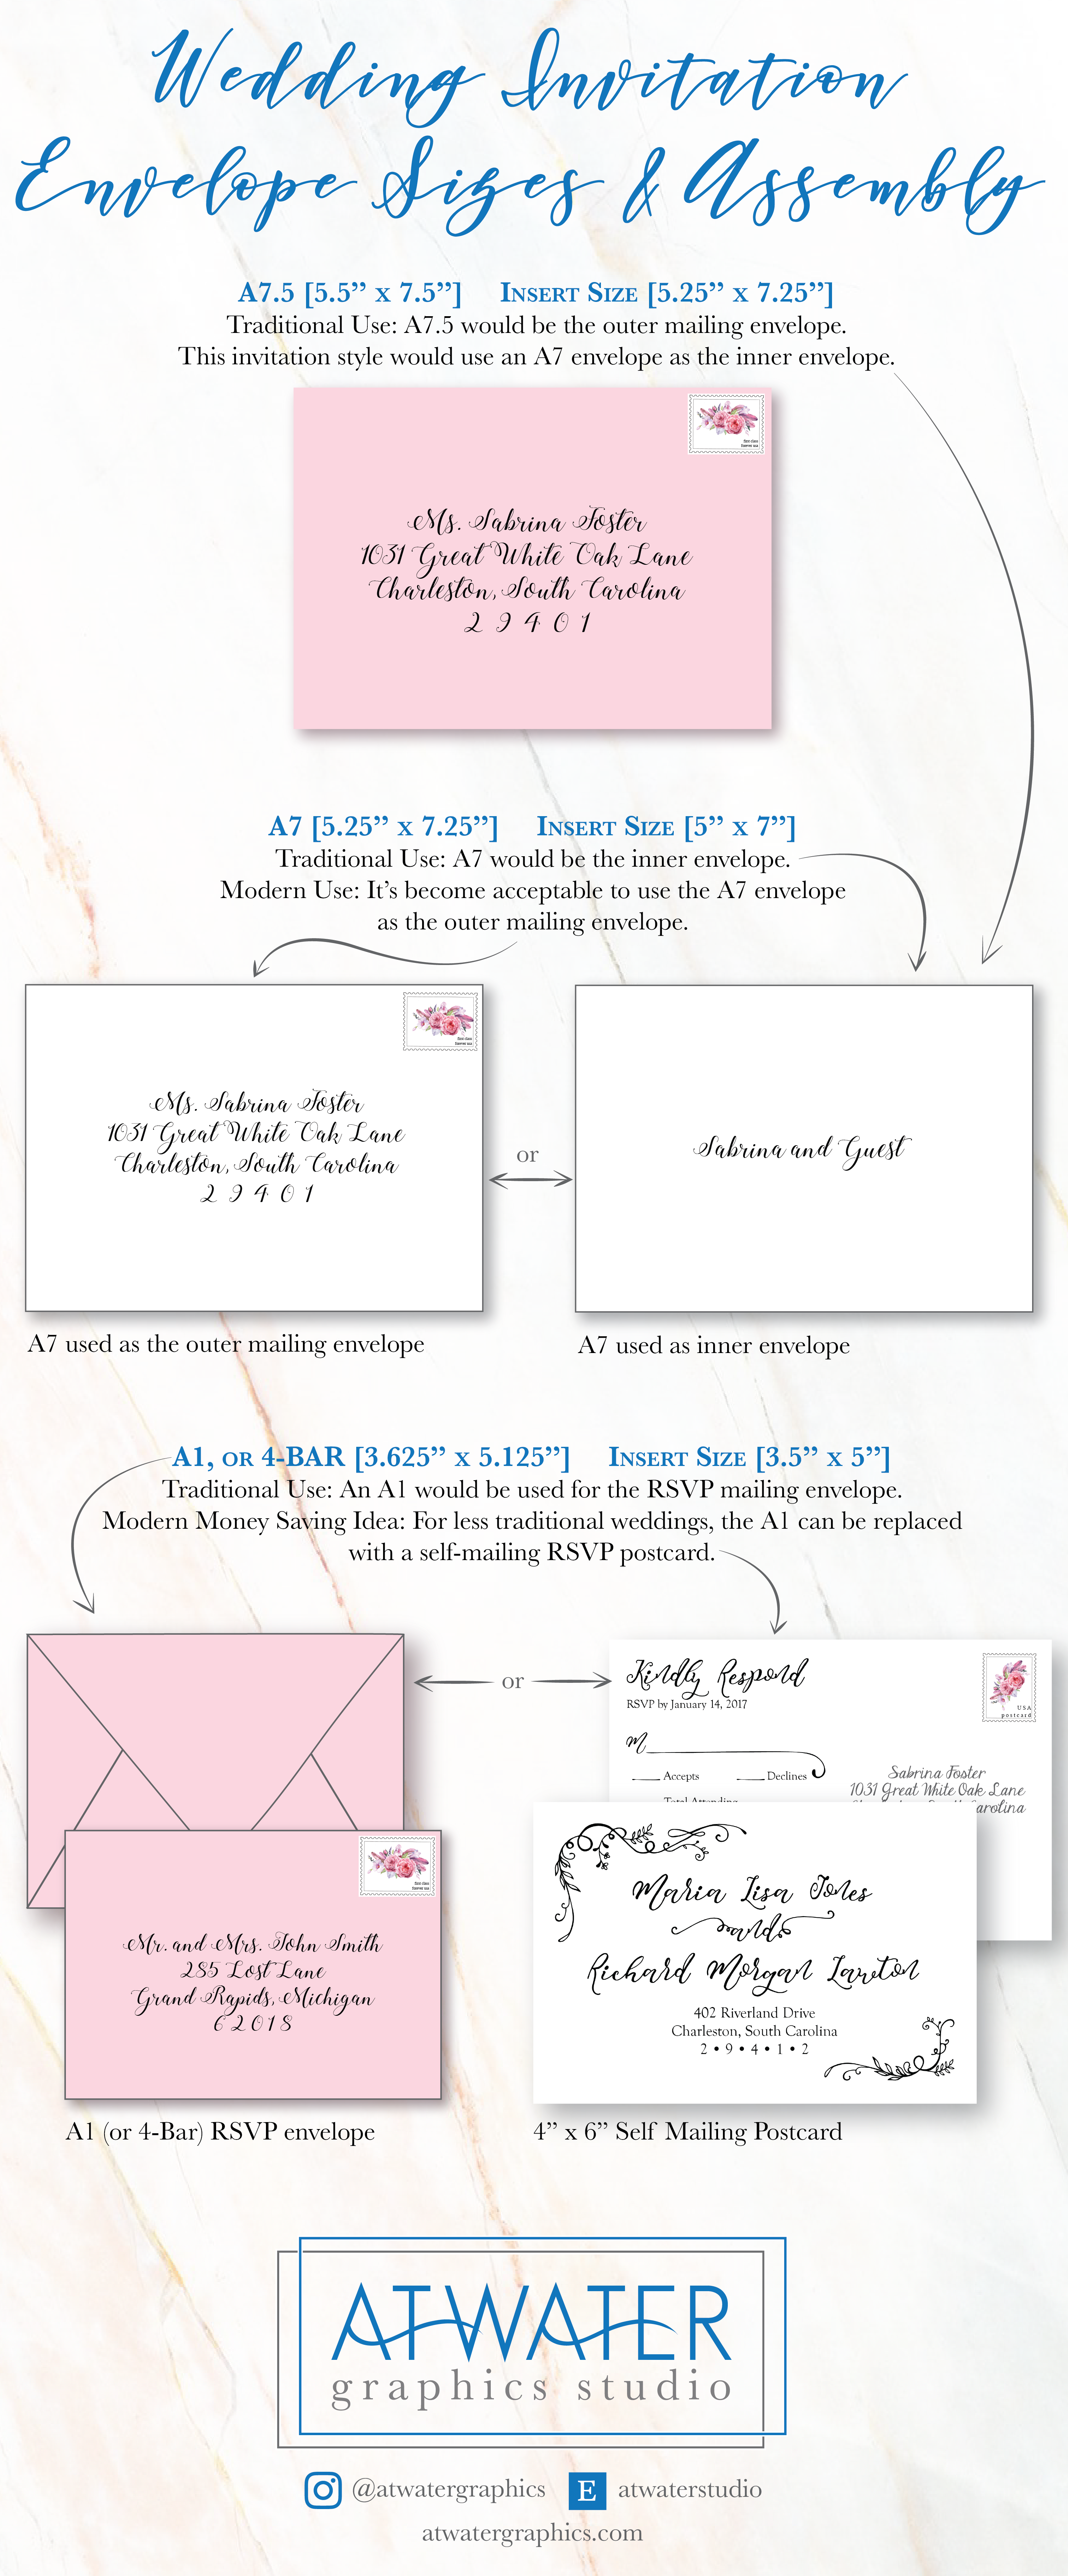 tips on wedding invitation envelope sizes and the inserts that match